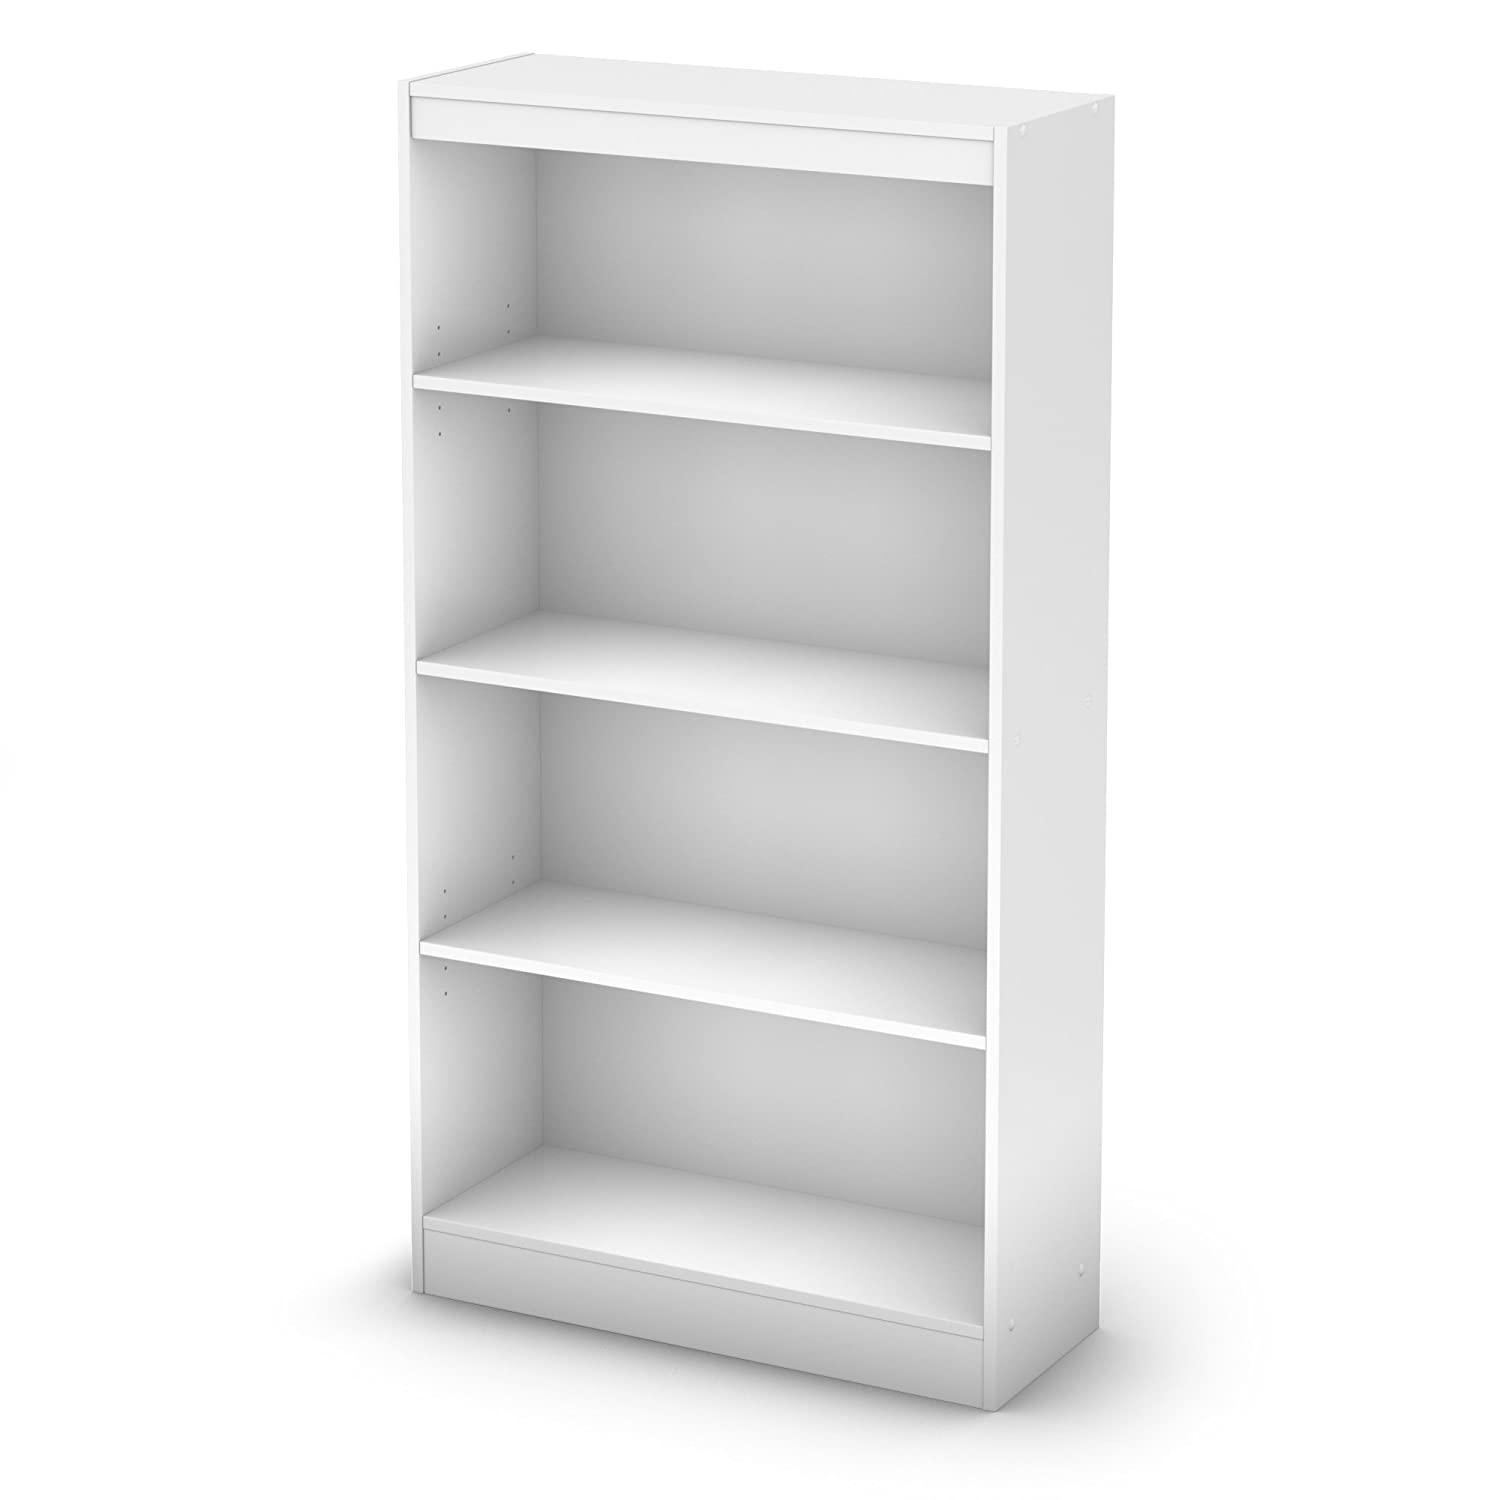 South Shore Axess Collection 4-Shelf Bookcase - Pure White 7250767C